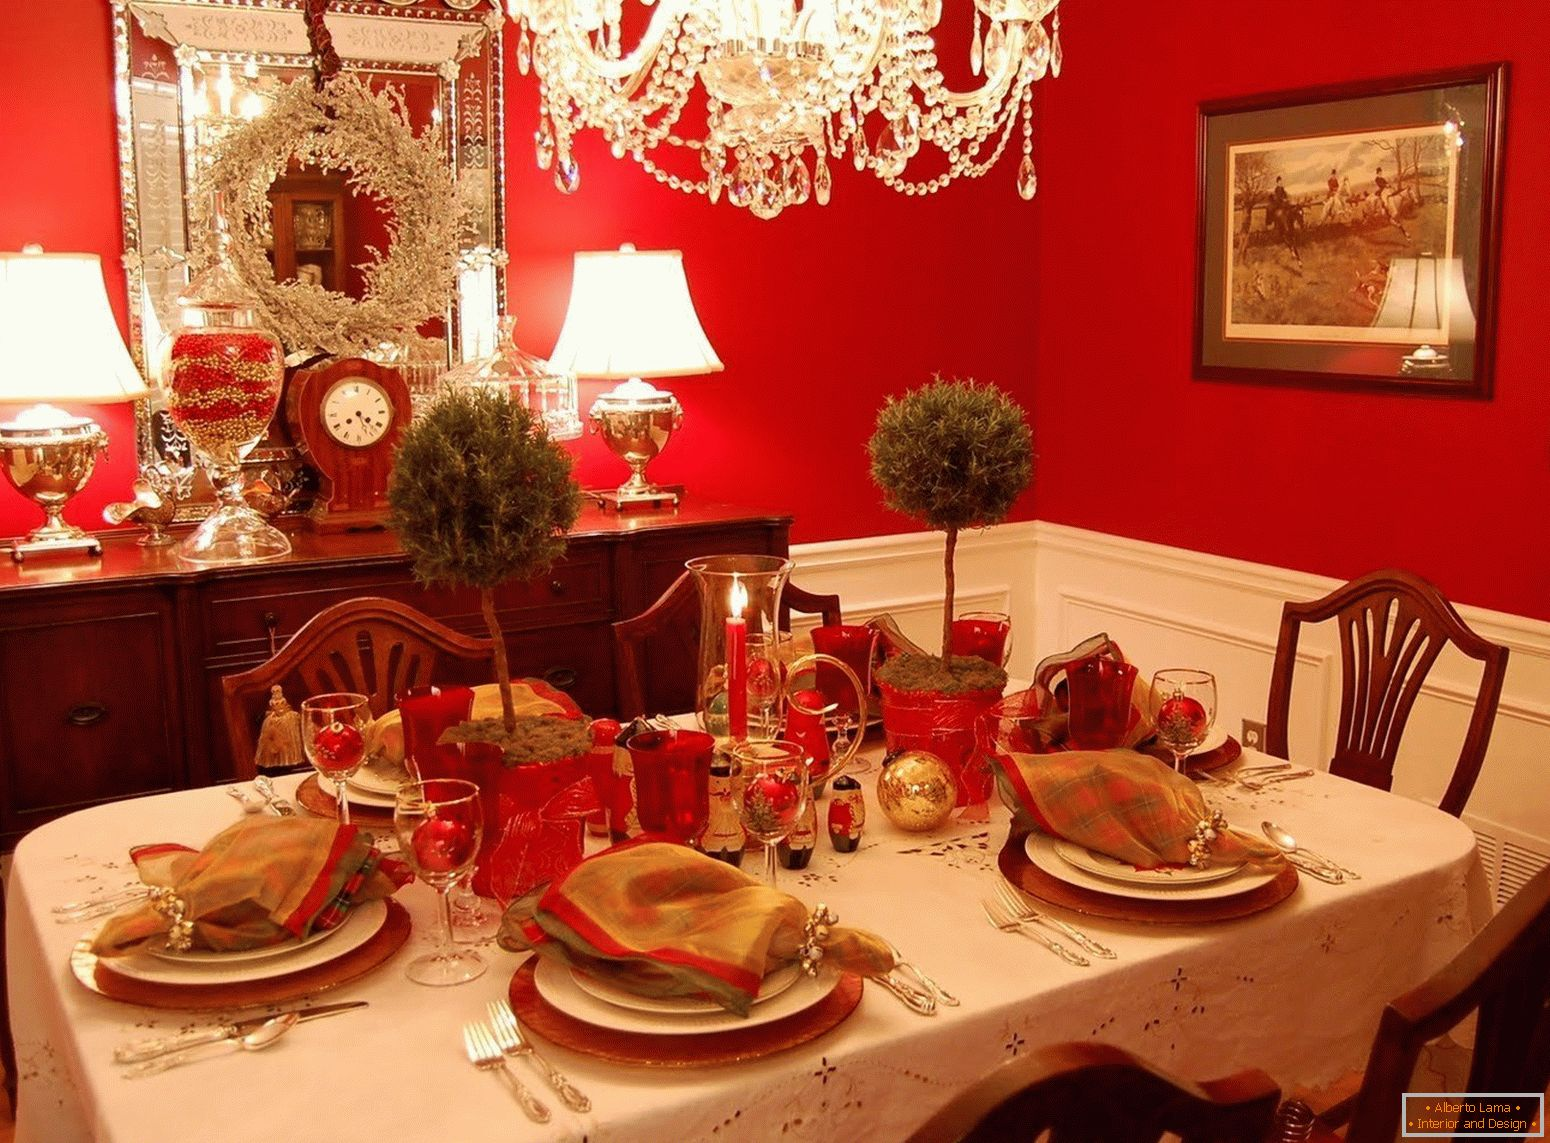 Red walls in the dining room